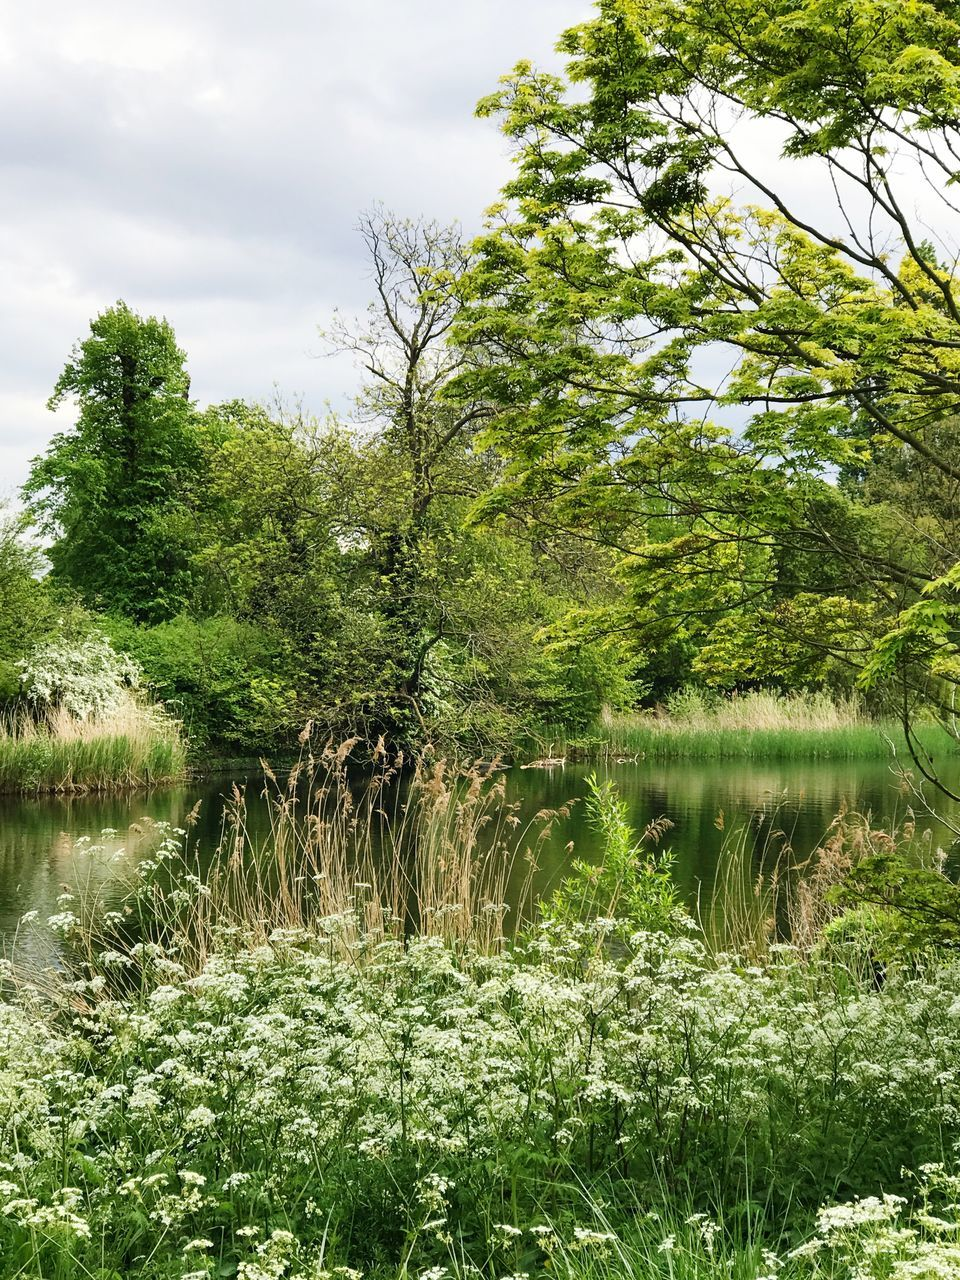 tree, water, lake, growth, nature, tranquil scene, tranquility, green color, no people, outdoors, grass, day, scenics, beauty in nature, landscape, sky, plant, forest